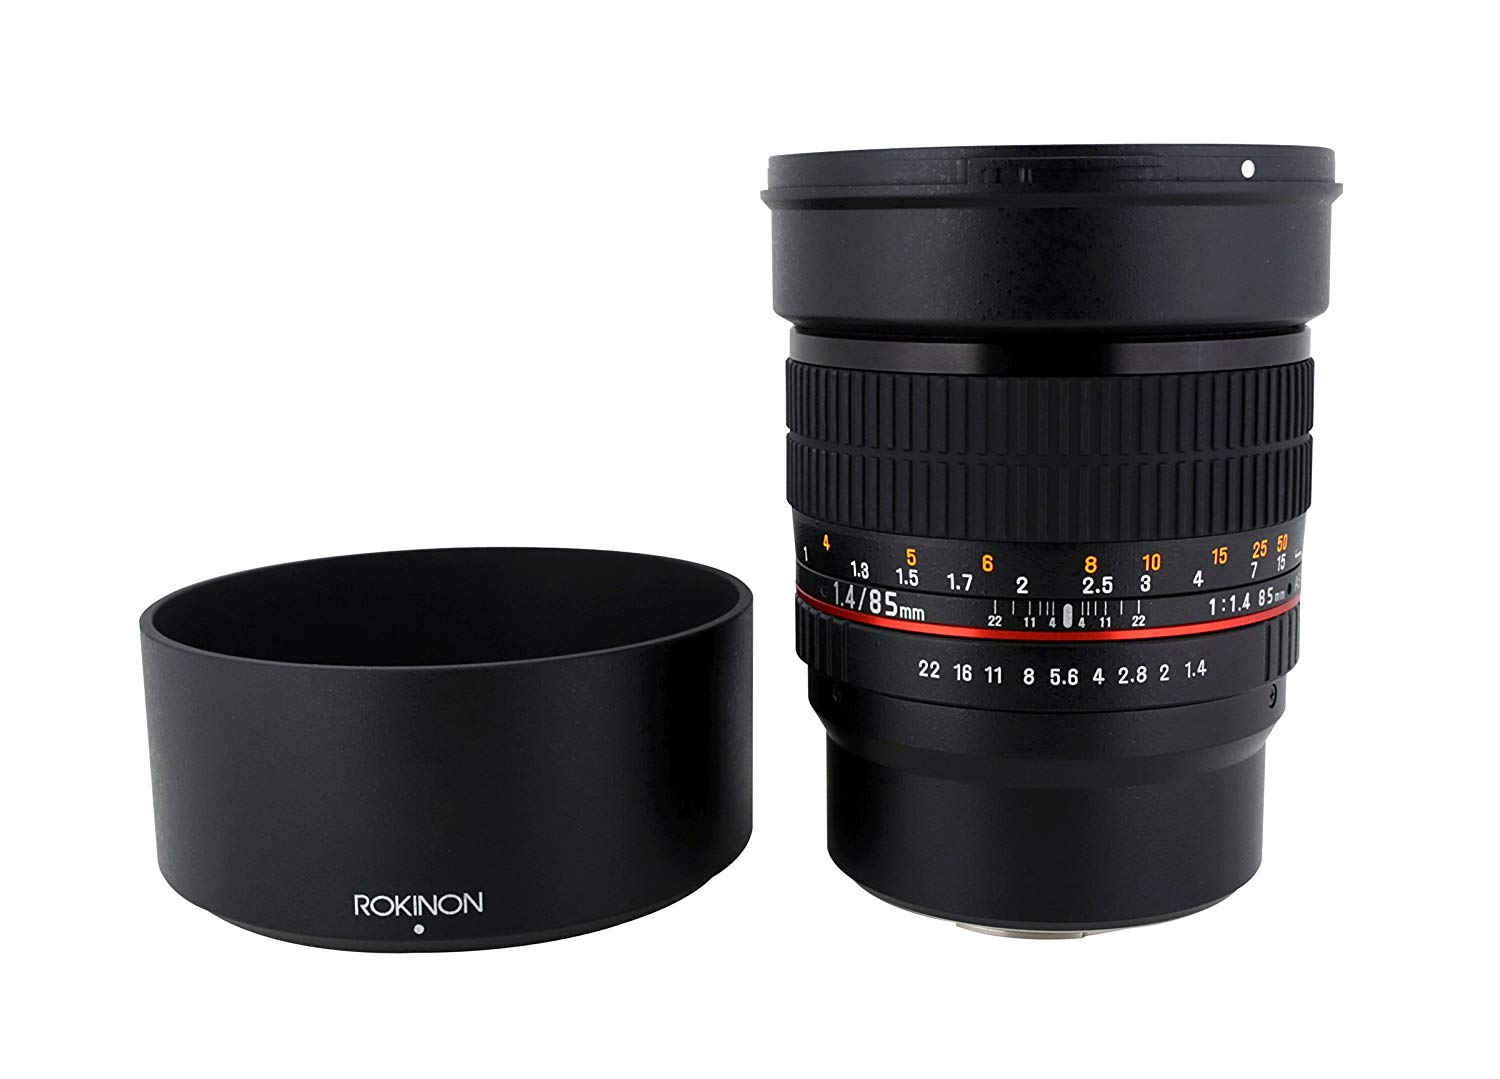 Roll over image to zoom in Rokinon 85M-MFT 85mm F1.4 Ultra Wide Lens for Micro Four-Thirds Mount Fixed Lens for Olympus/Panasonic Micro 4/3 Cameras